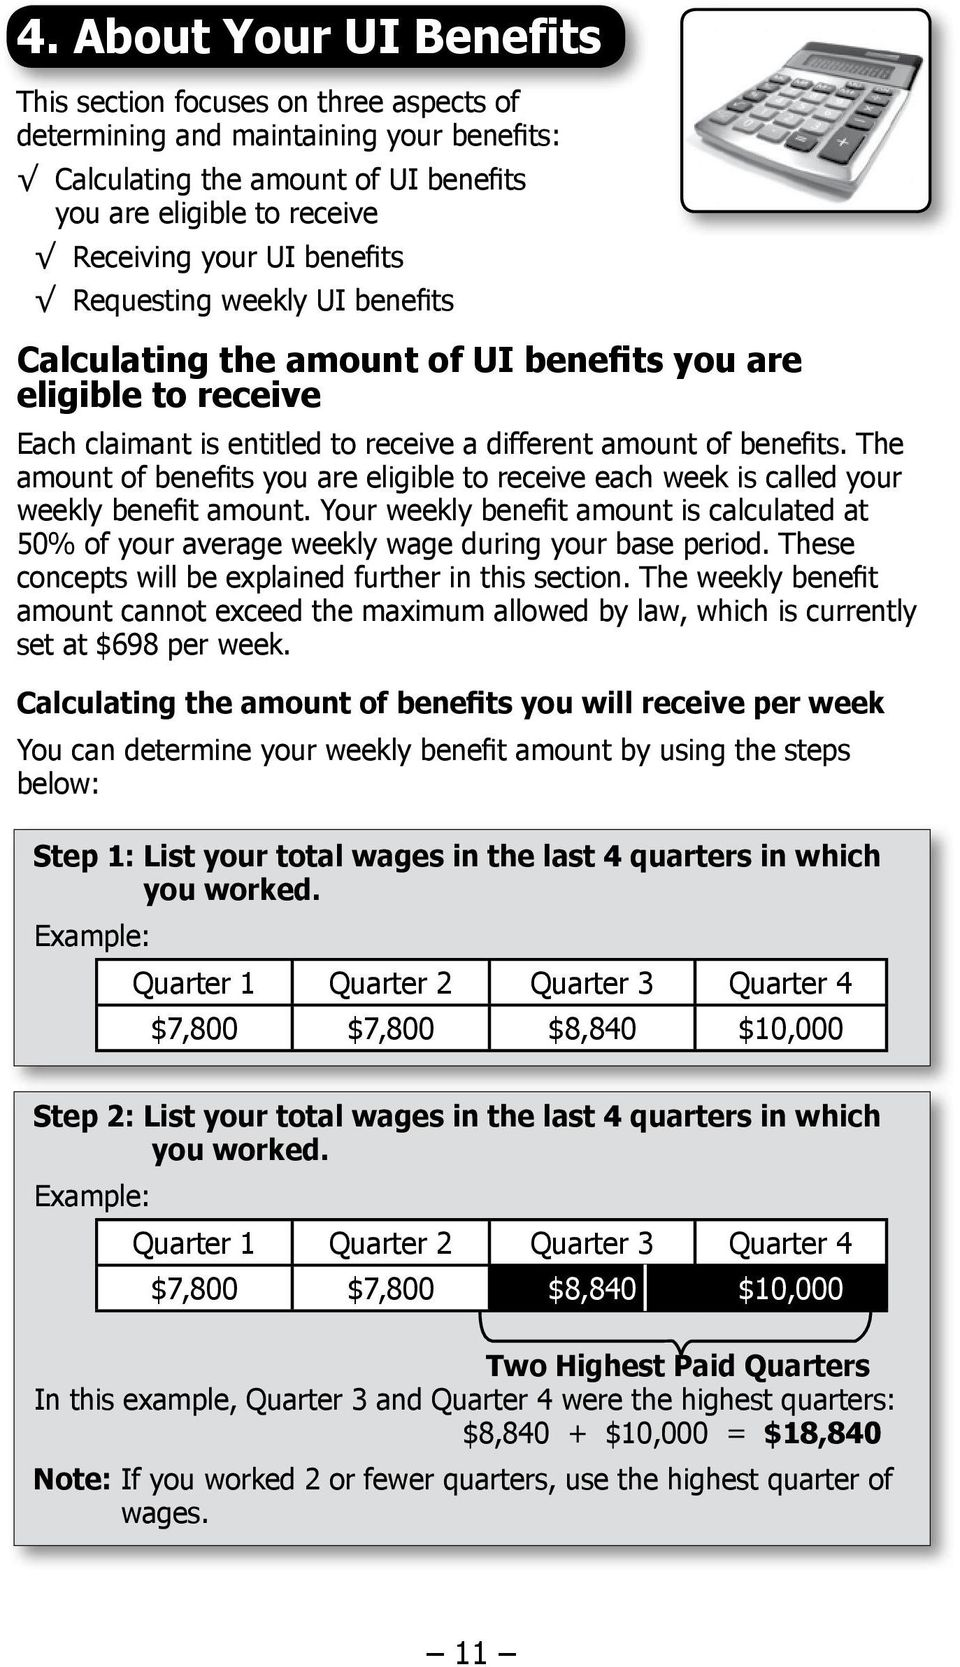 The amount of benefits you are eligible to receive each week is called your weekly benefit amount. Your weekly benefit amount is calculated at 50% of your average weekly wage during your base period.